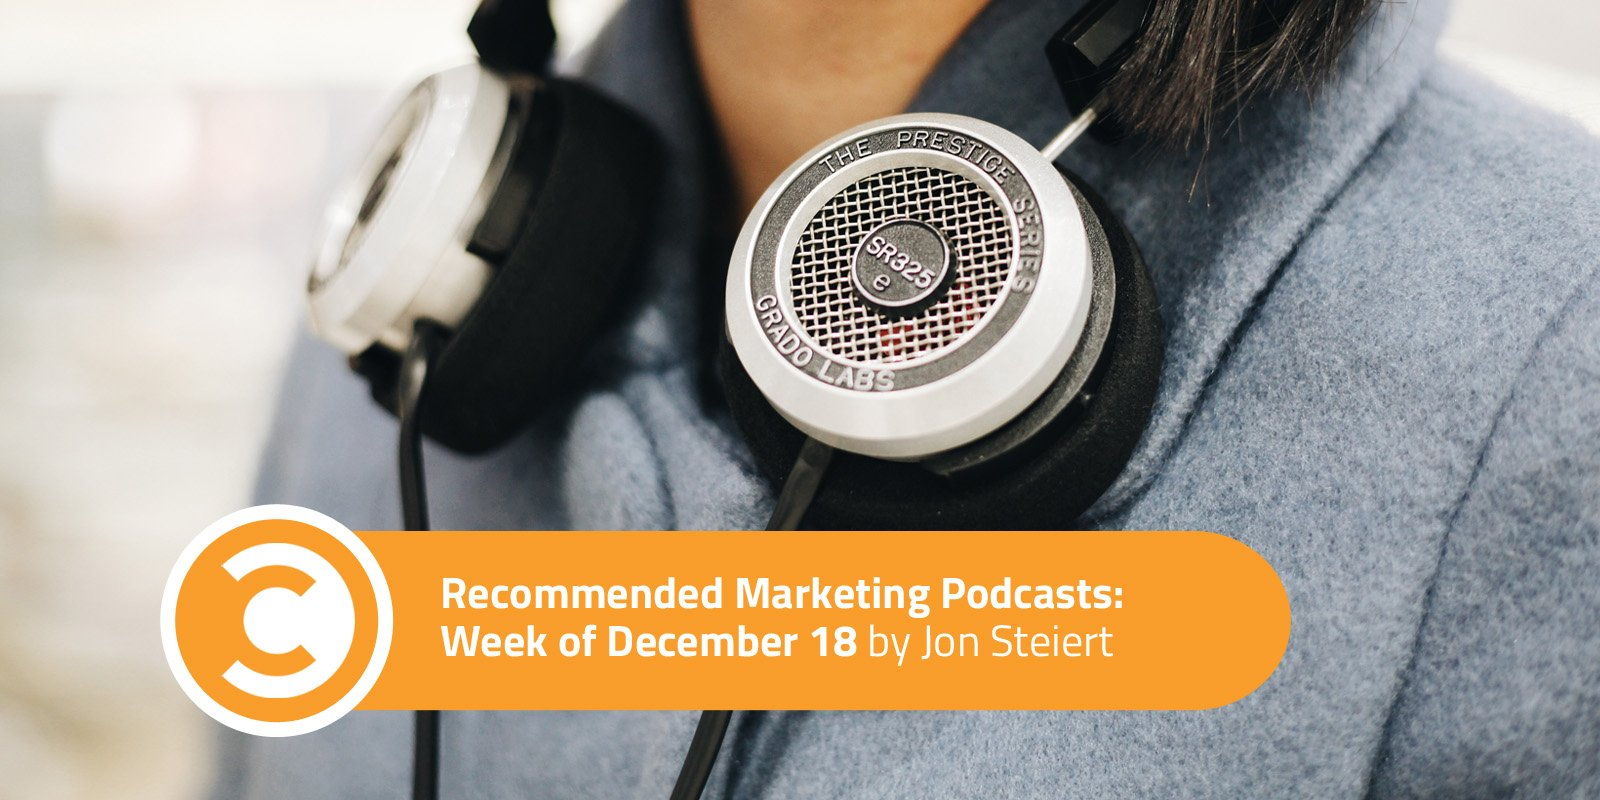 Recommended Marketing Podcasts Week of December 18